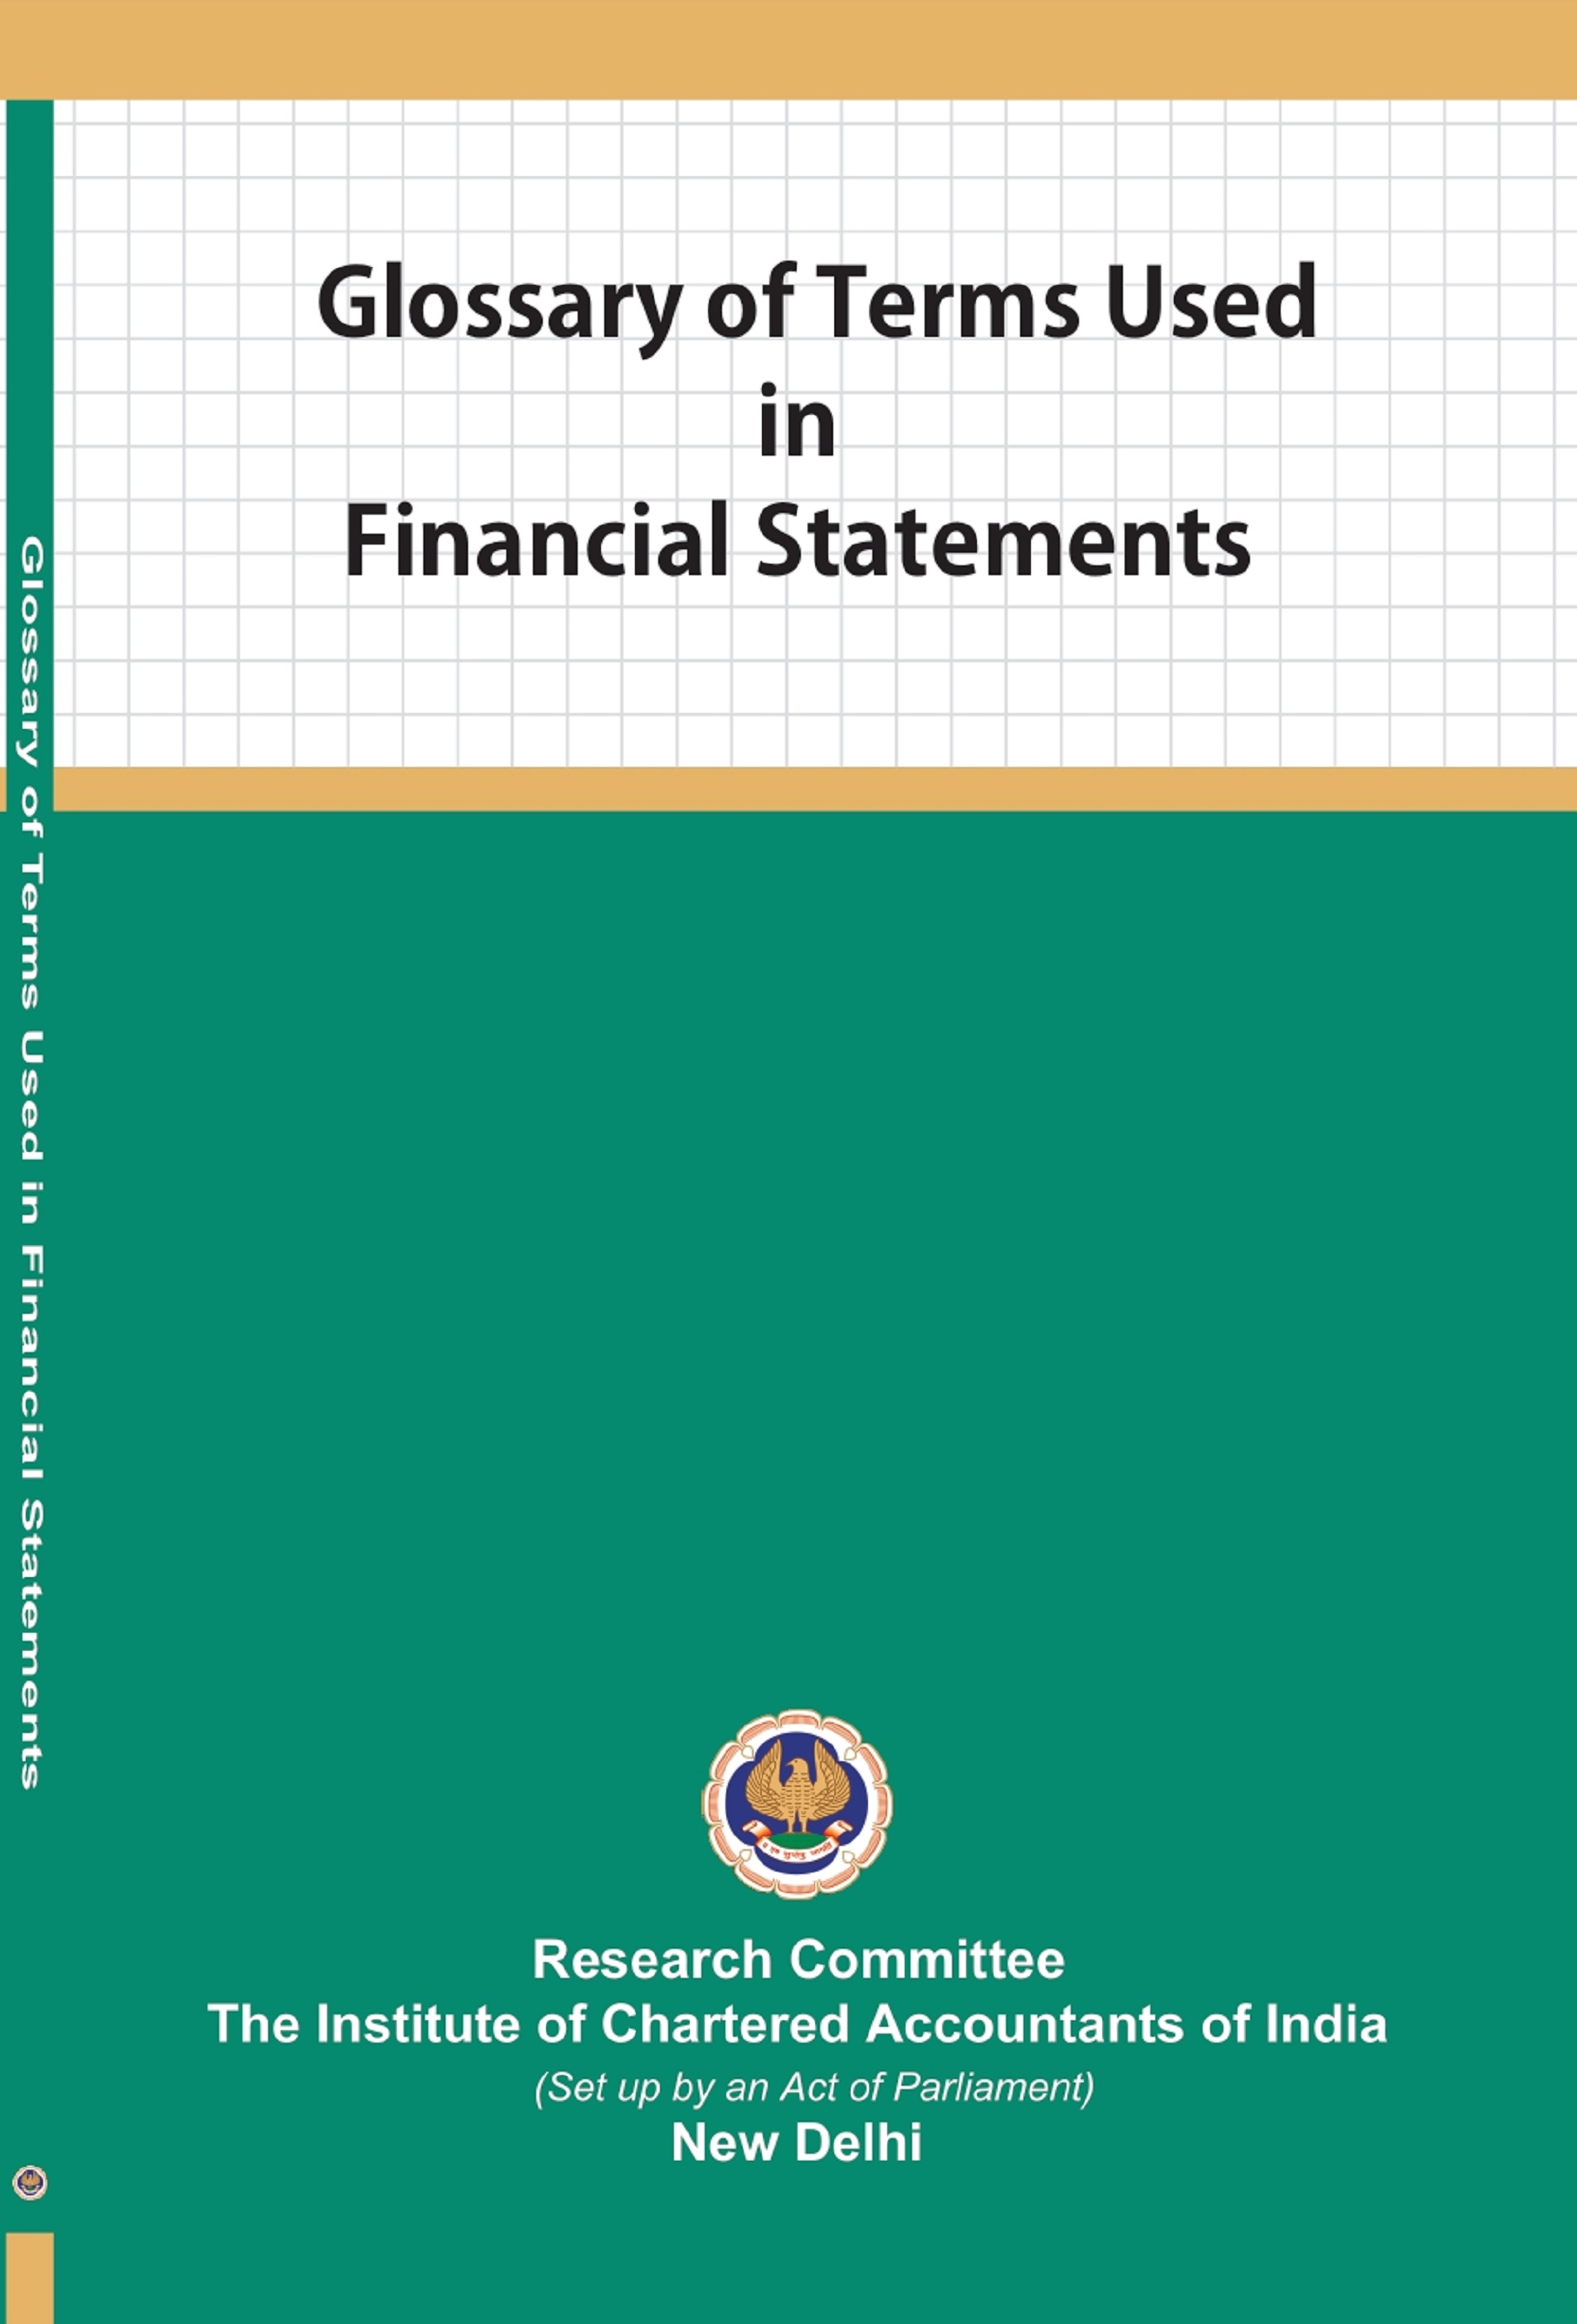 Glossary of Terms Used in Financial Statements (July, 2019)